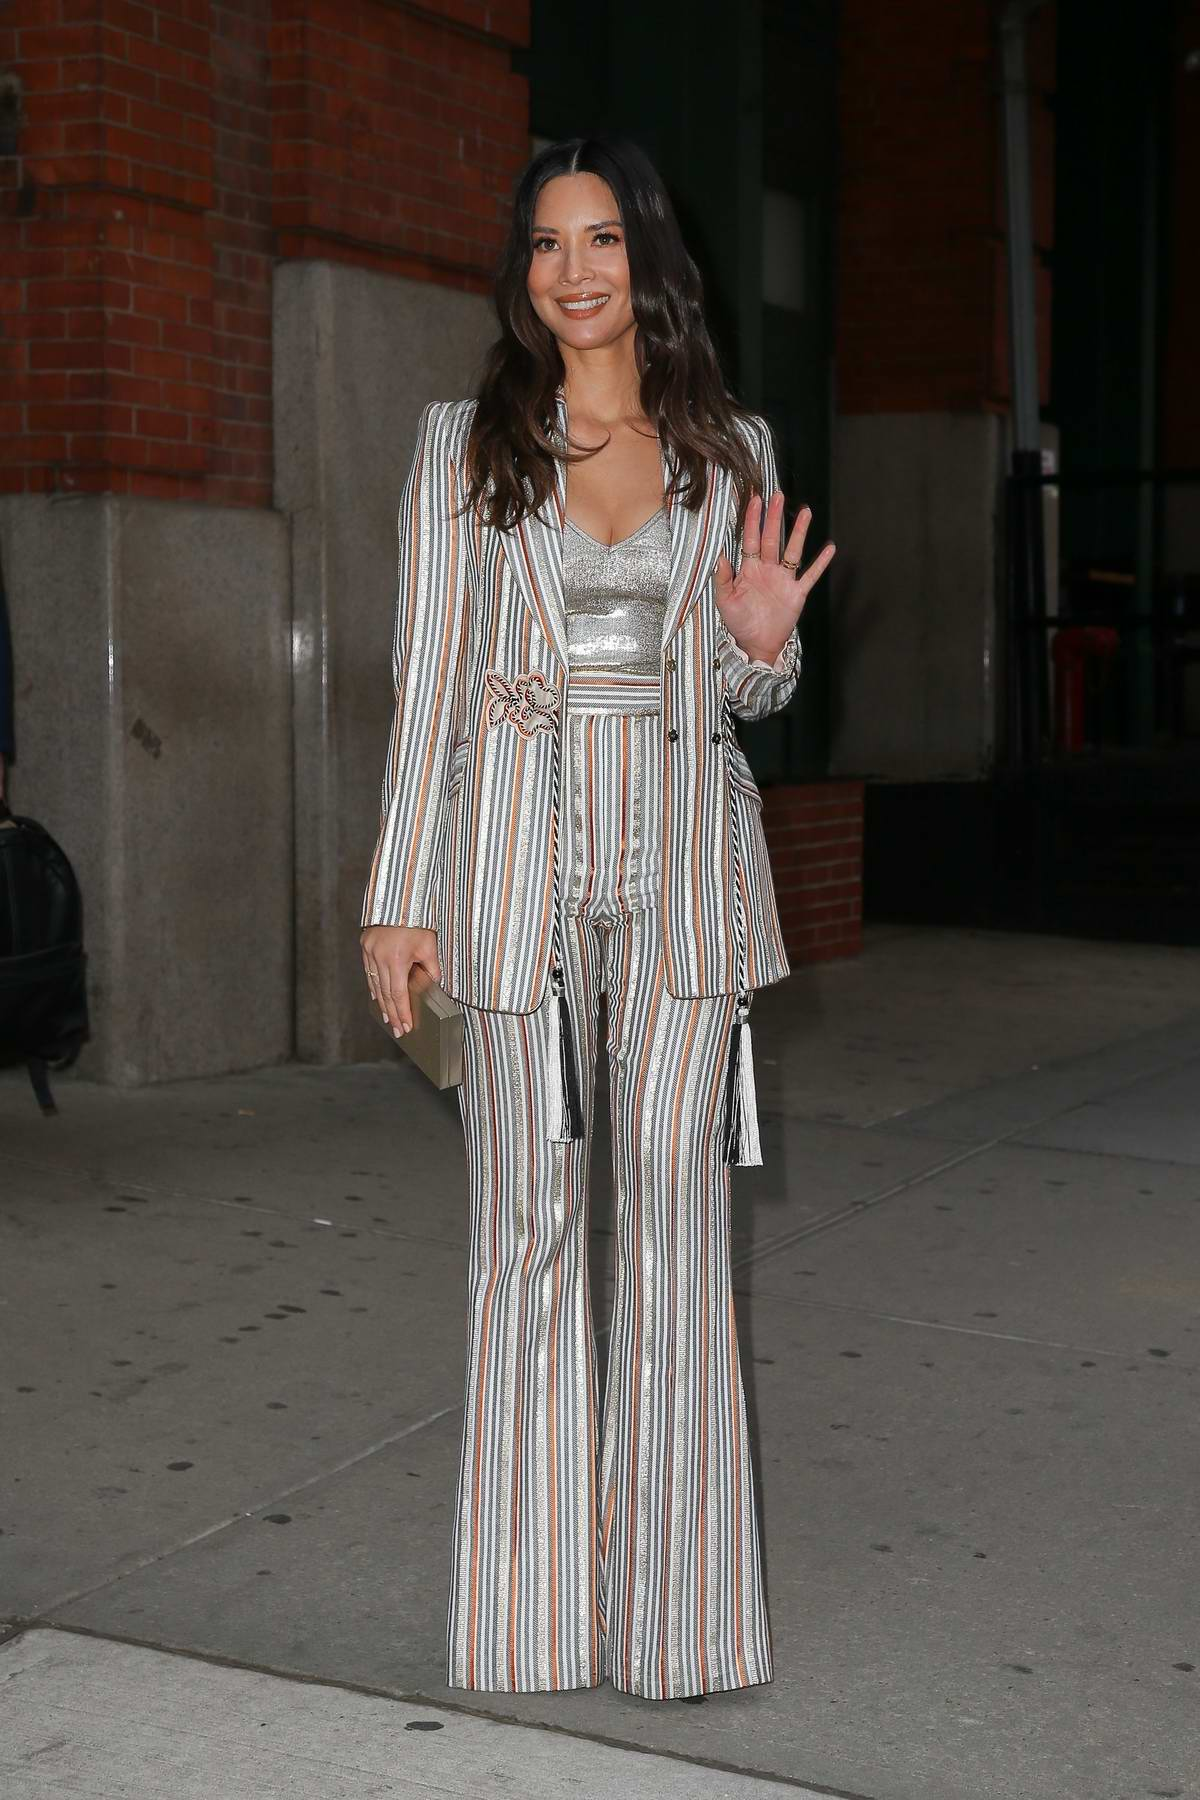 Olivia Munn looks classy with striped silver suit as she leaves The Greenwich Hotel in New York City